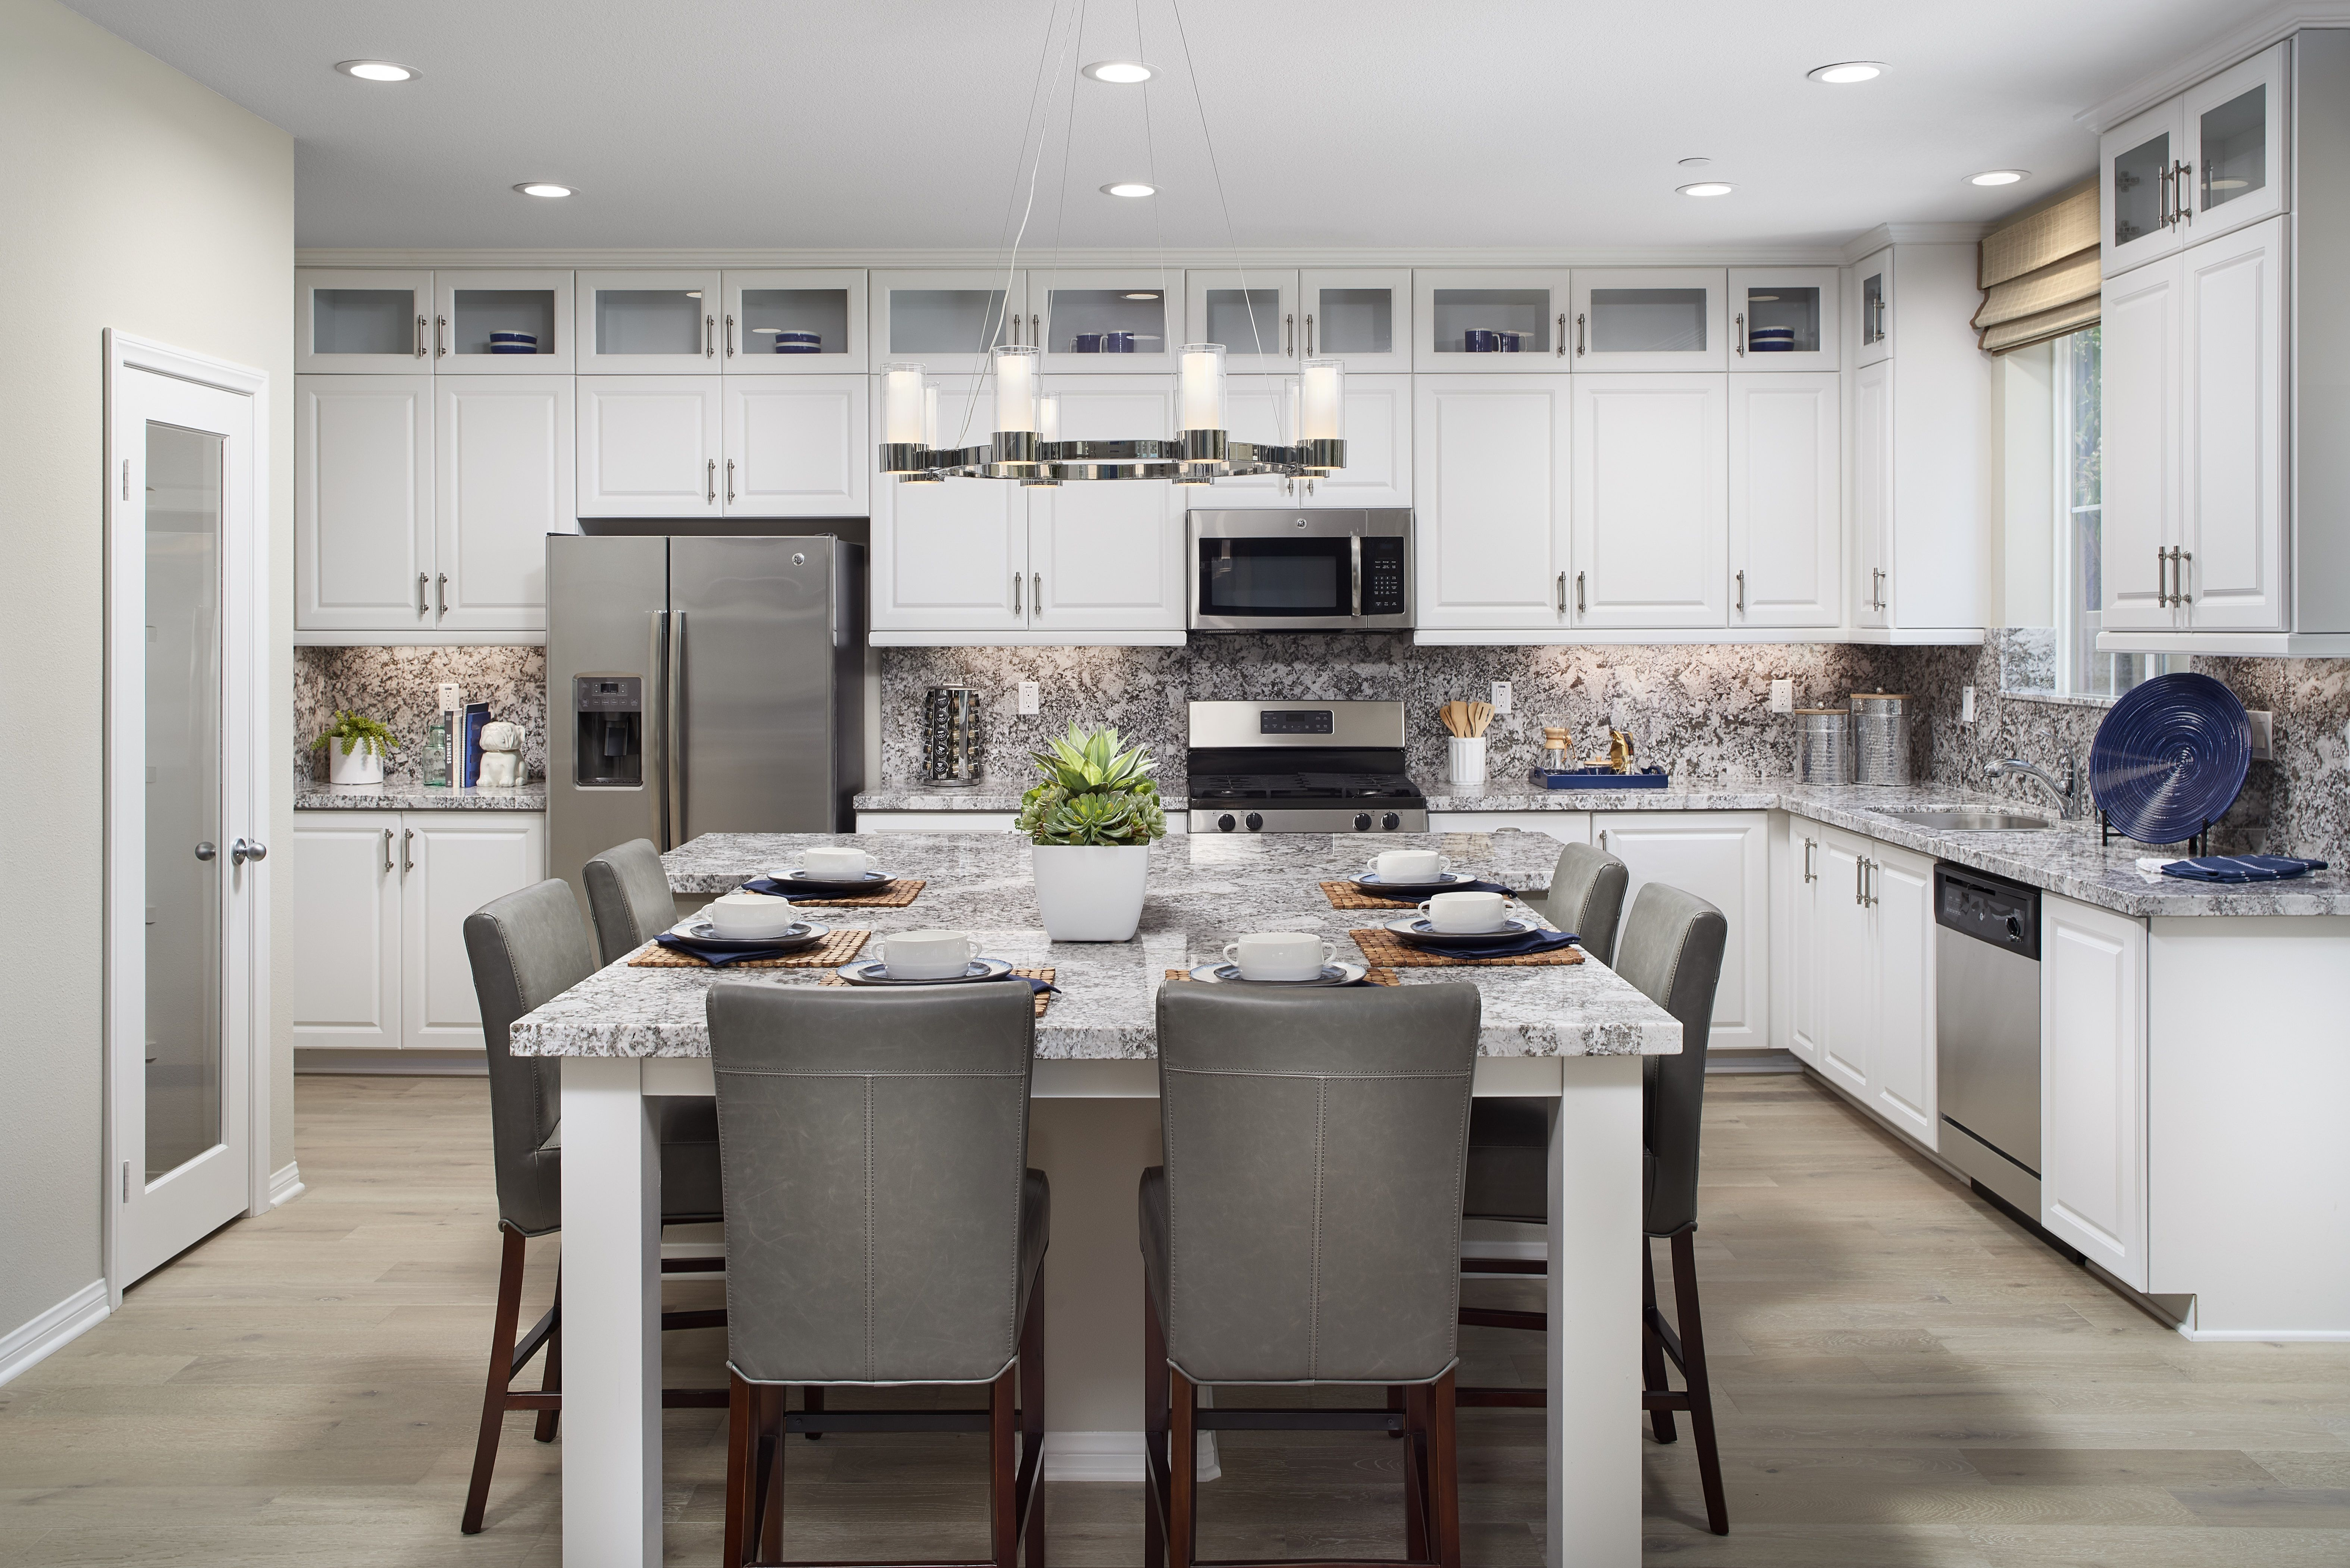 Counter Height Built In Dining Table We Say Yes You Kitchen Island With Stove Kitchen Decor Furniture